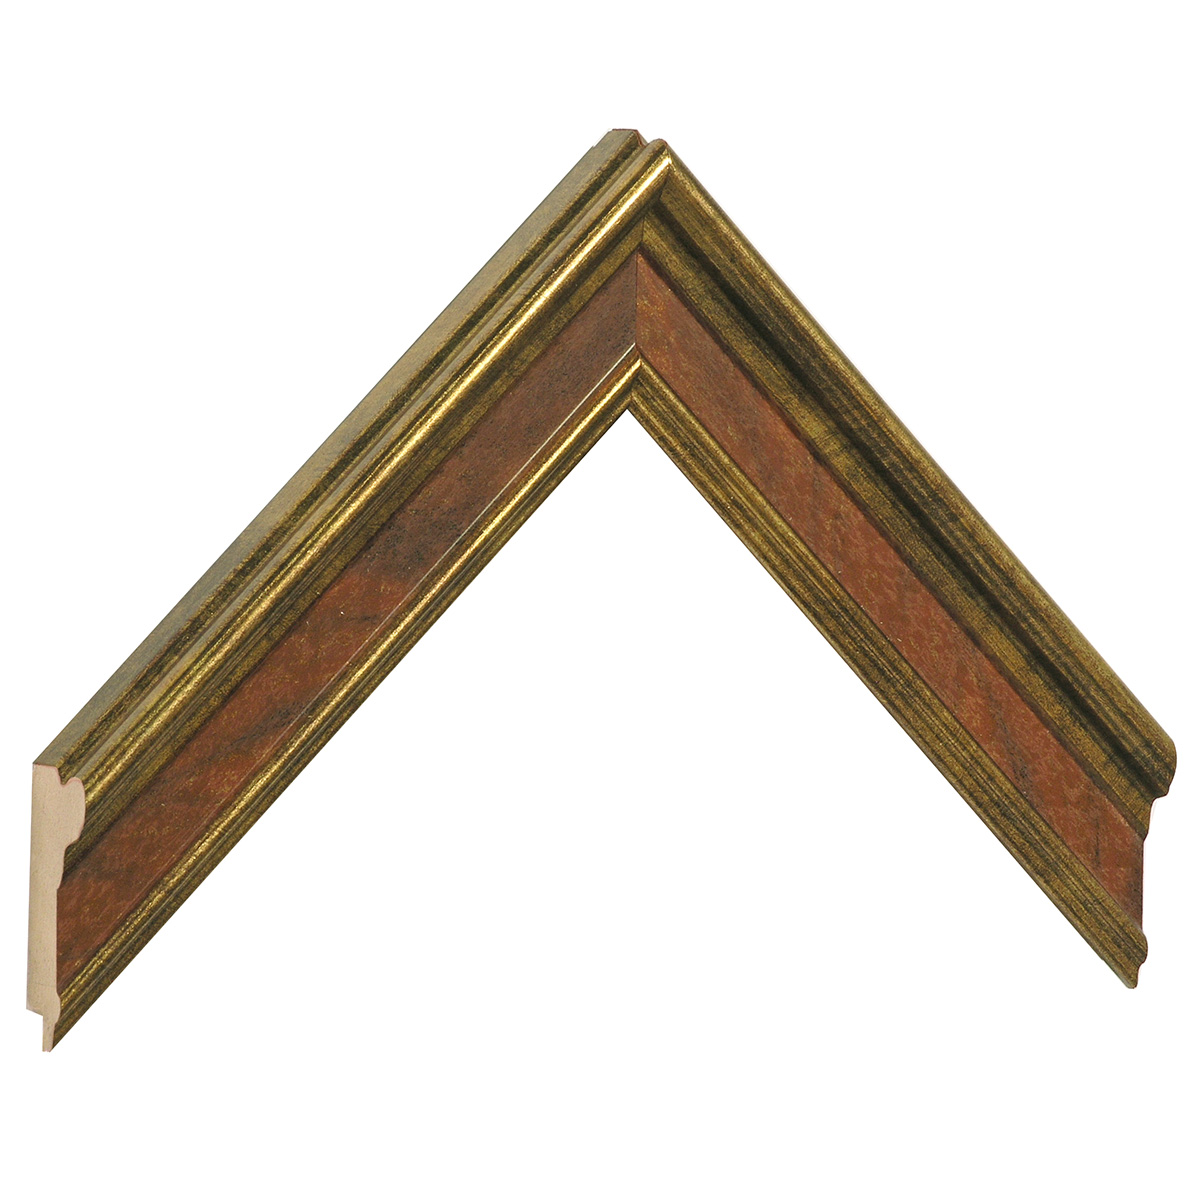 Moulding finger-joint pine Width 34mm, Gold red band